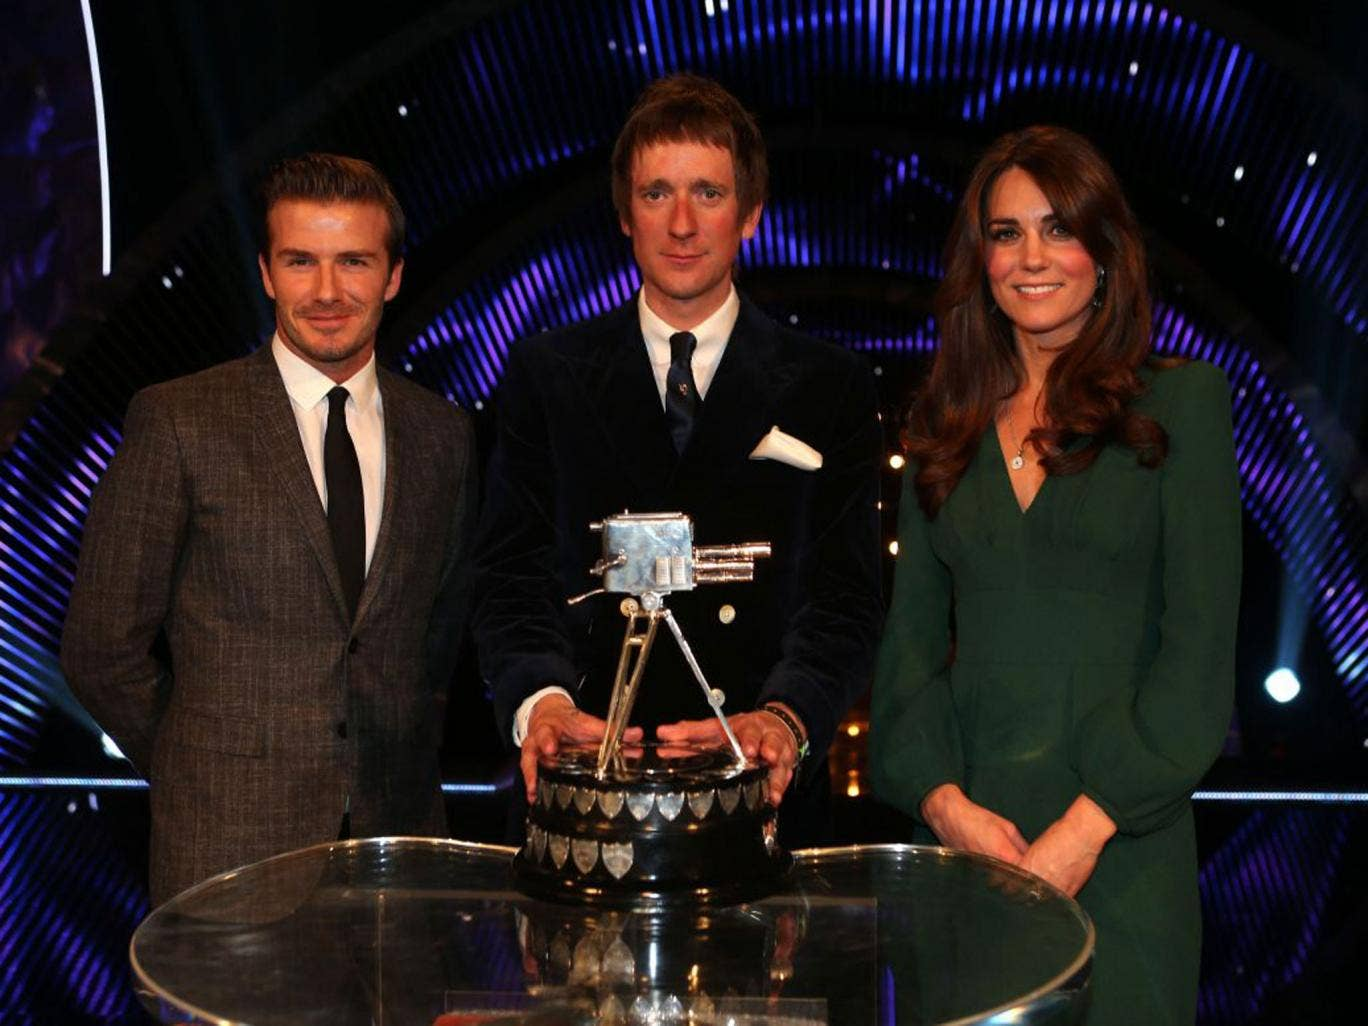 Tabloid favourites David Beckham and the Duchess of Cambridge were there to endorse the people's choice, Bradley Wiggins